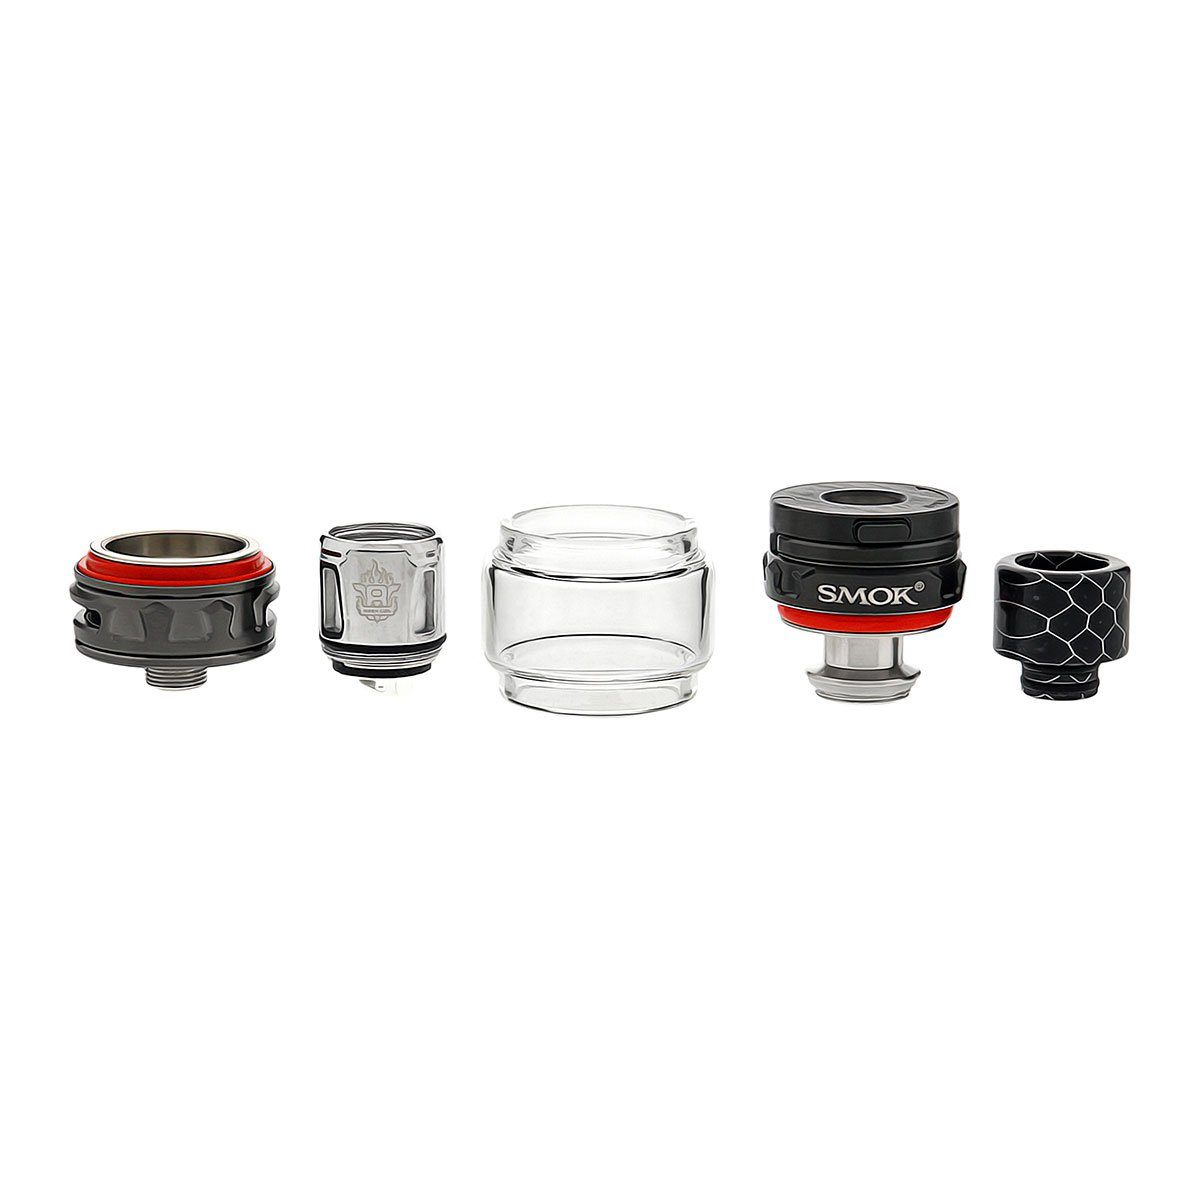 SMOK Stick Prince Baby Kit with TFV12 Baby Prince Tank